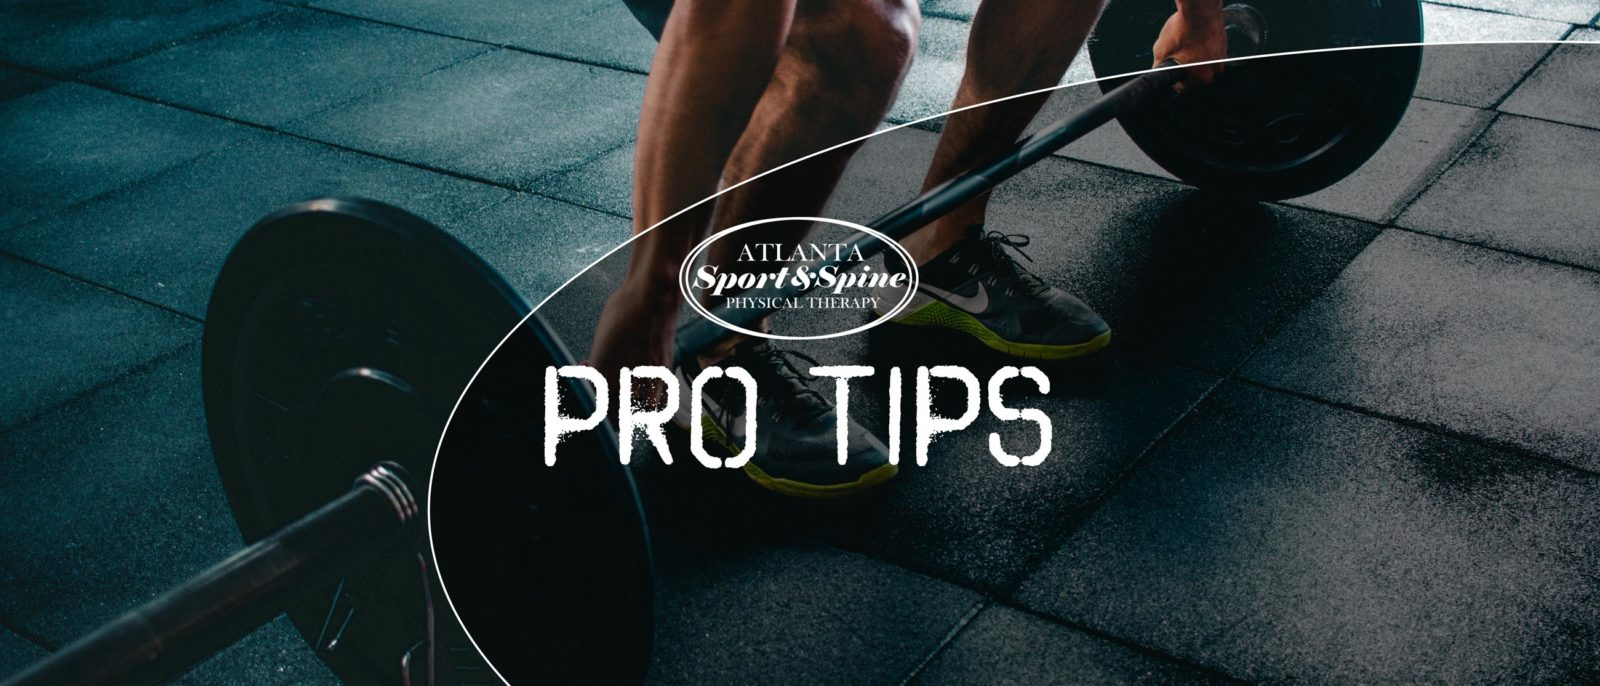 Pro tips and info from Atlanta Sport and Spine Physical Therapy